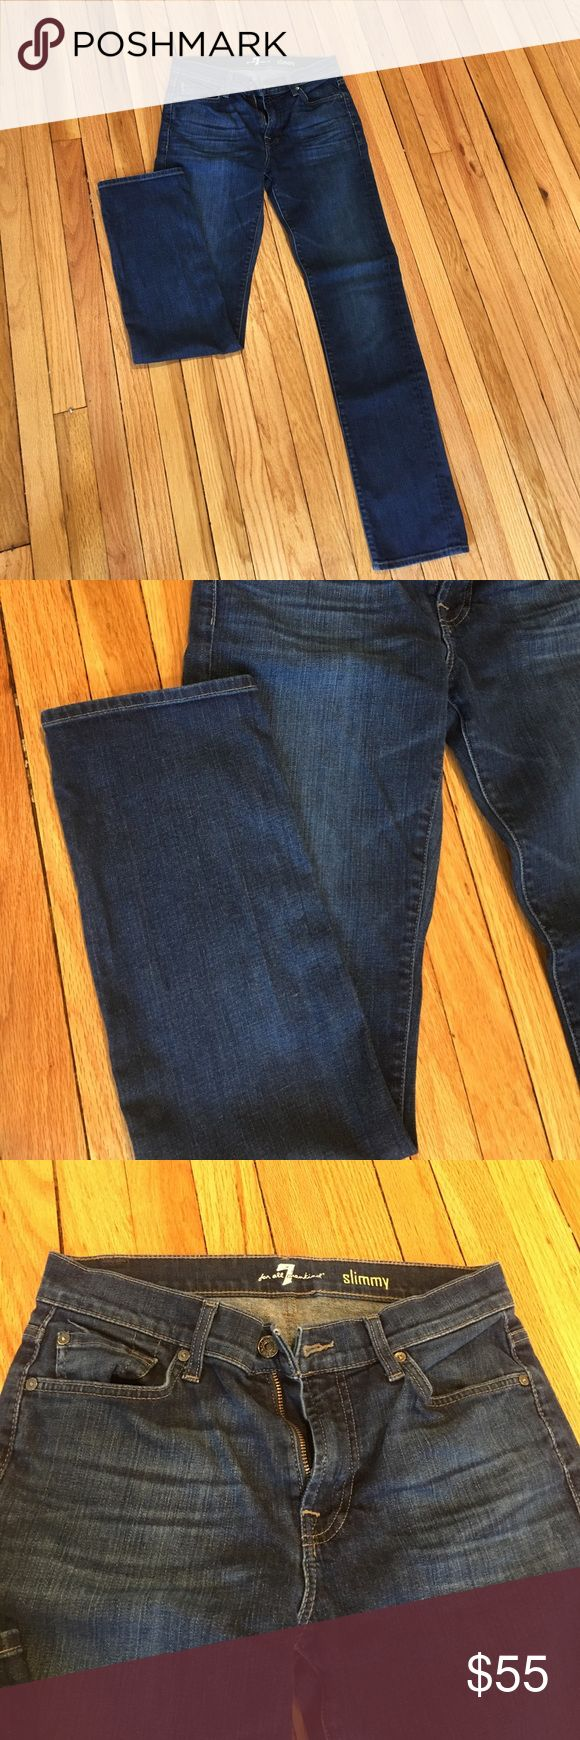 7 For All Mankind men's slim jeans Perfect NWOT condition. My husband wore these just a handful of times. Size 30 waist and 32inches inseam. Feel free to ask questions. 7 For All Mankind Jeans Straight